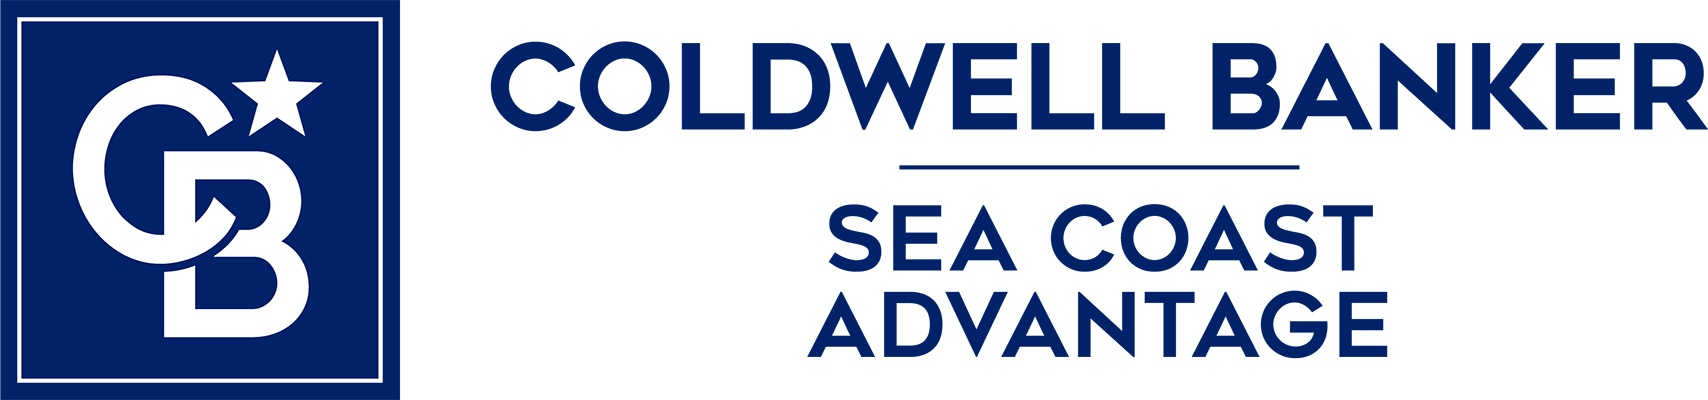 Michael Jones - Coldwell Banker Sea Coast Advantage Realty